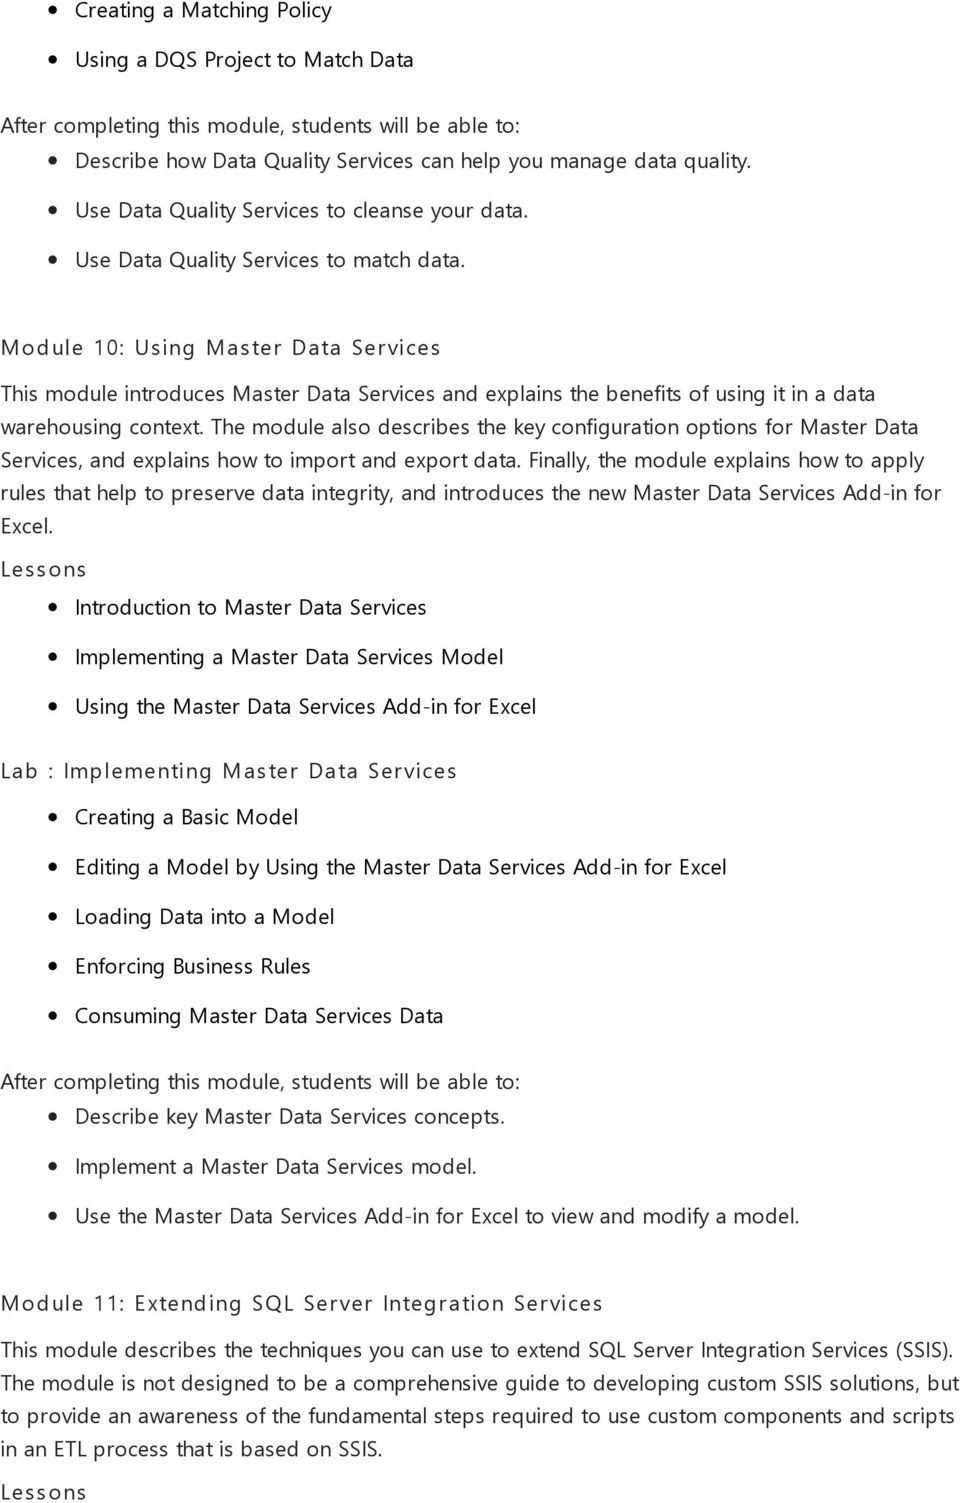 The module also describes the key configuration options for Master Data Services, and explains how to import and export data.